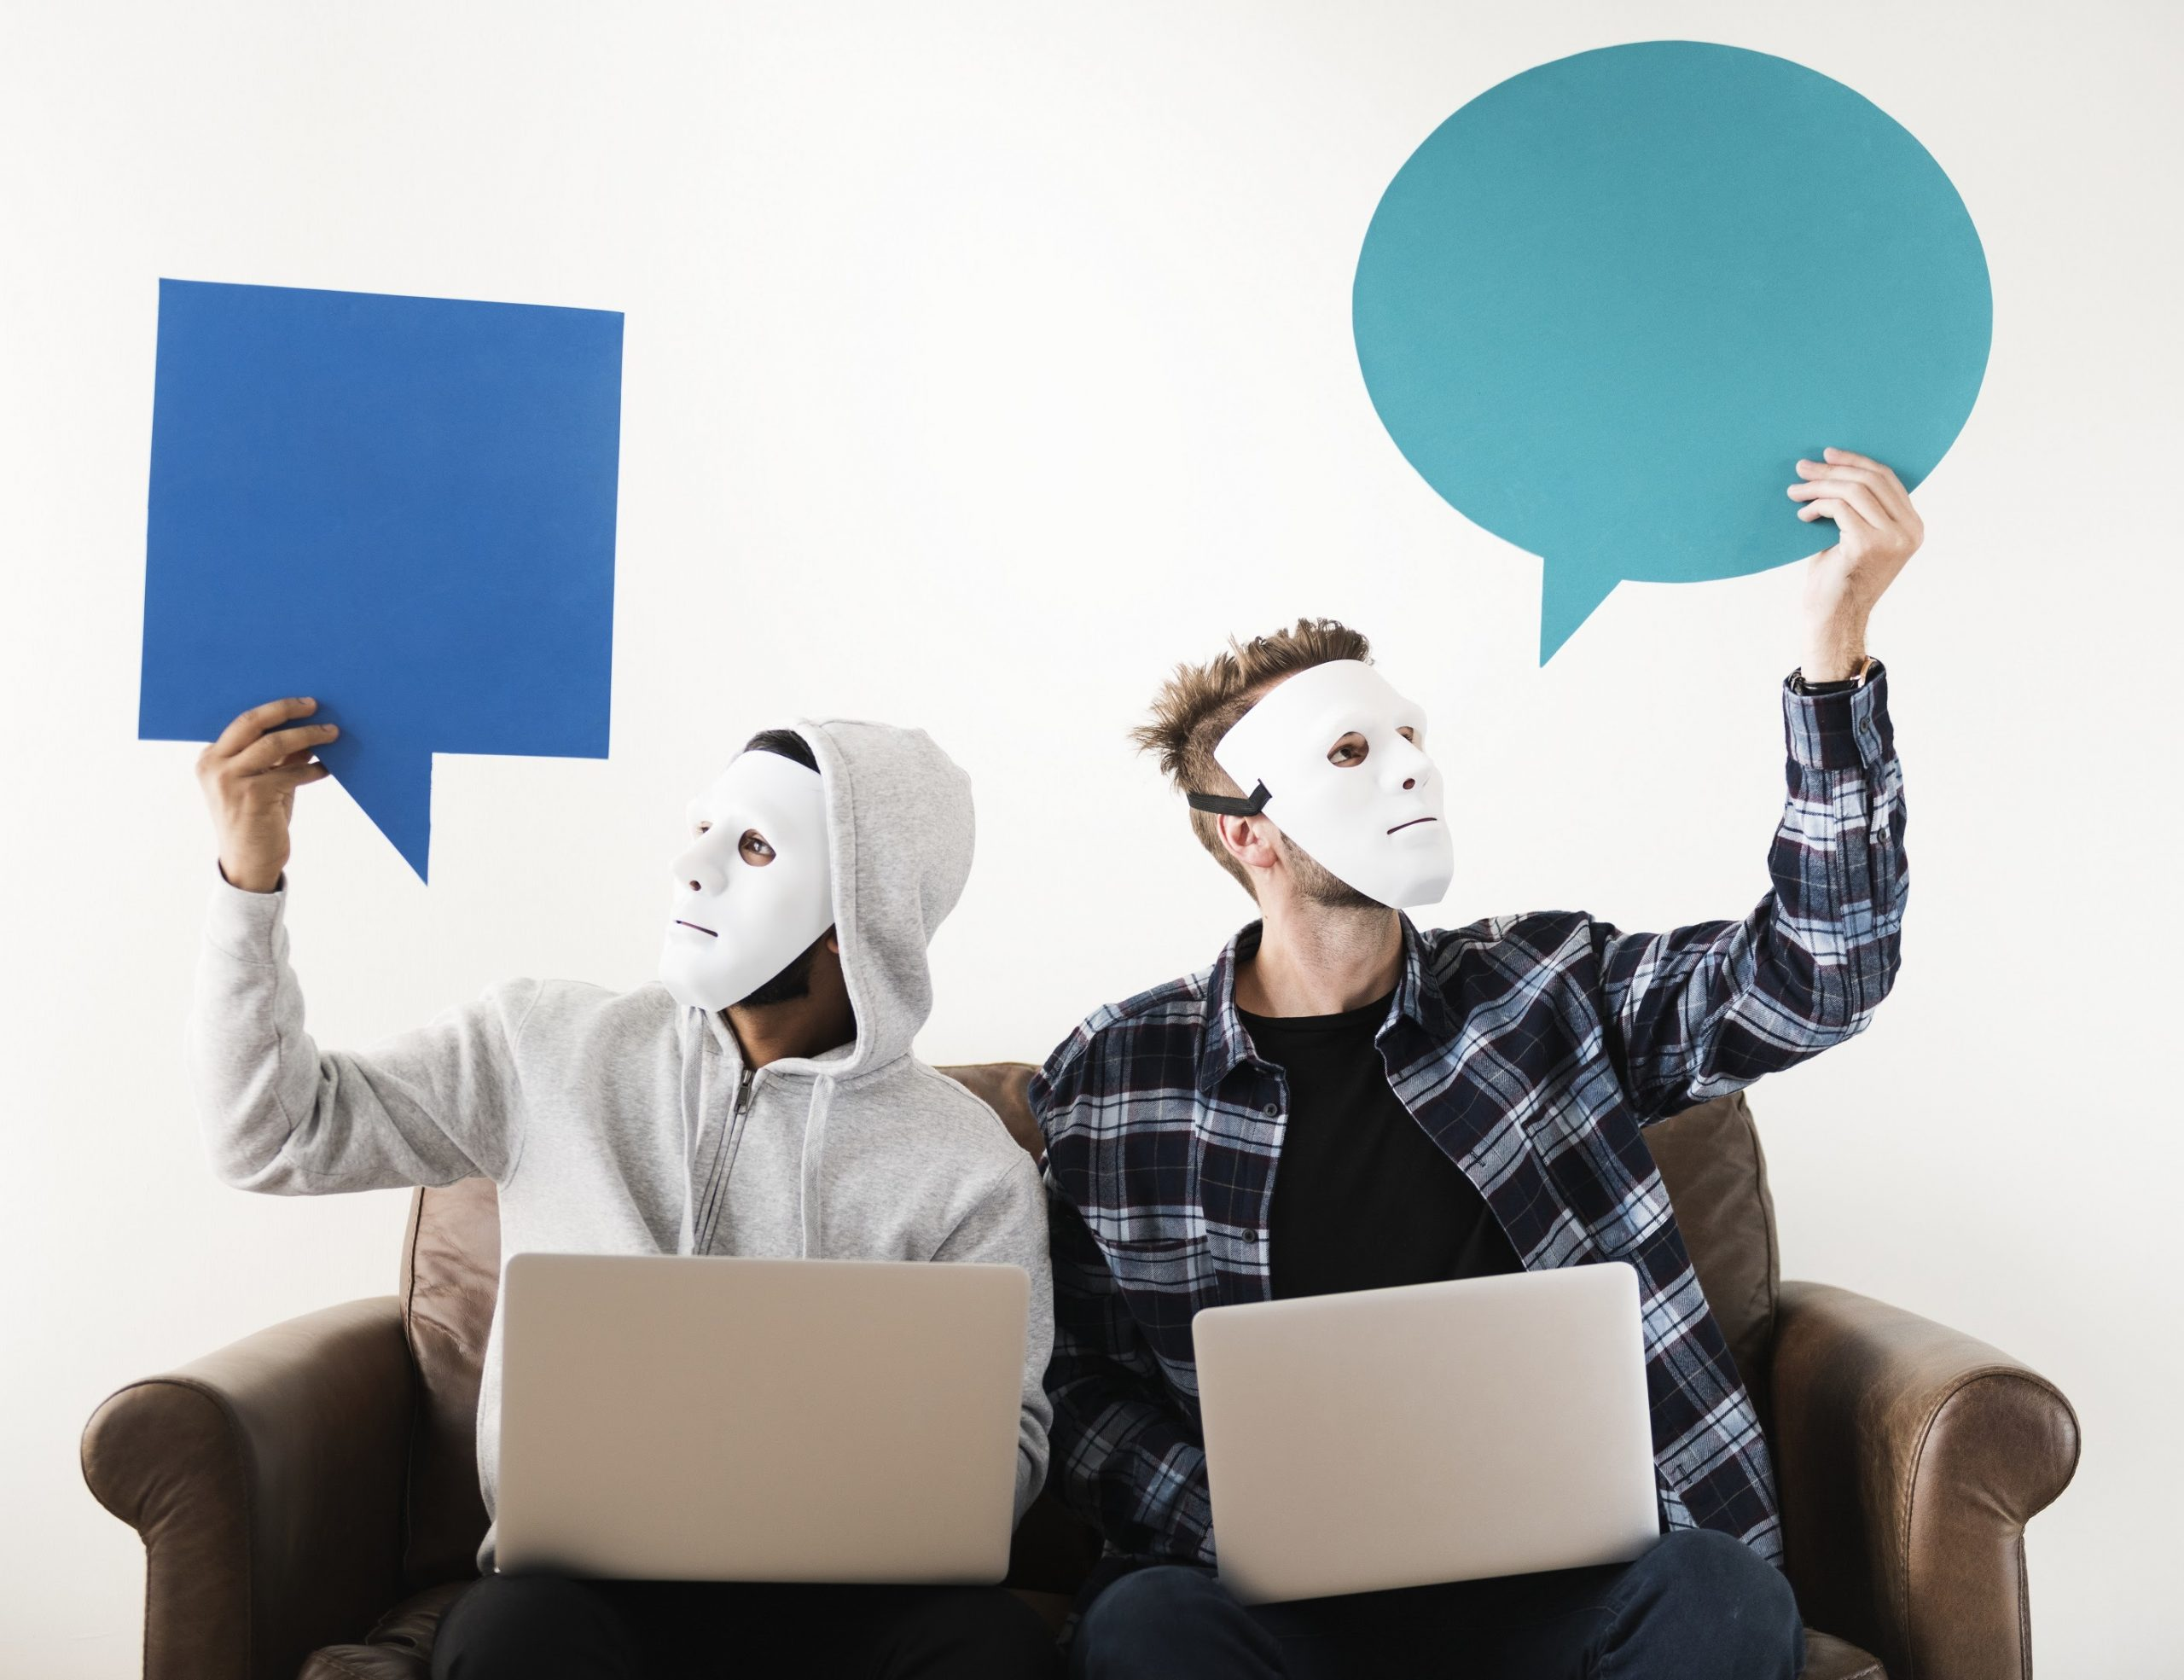 Grooming: the rise of the use of social networks increases the risk of cyberbullying